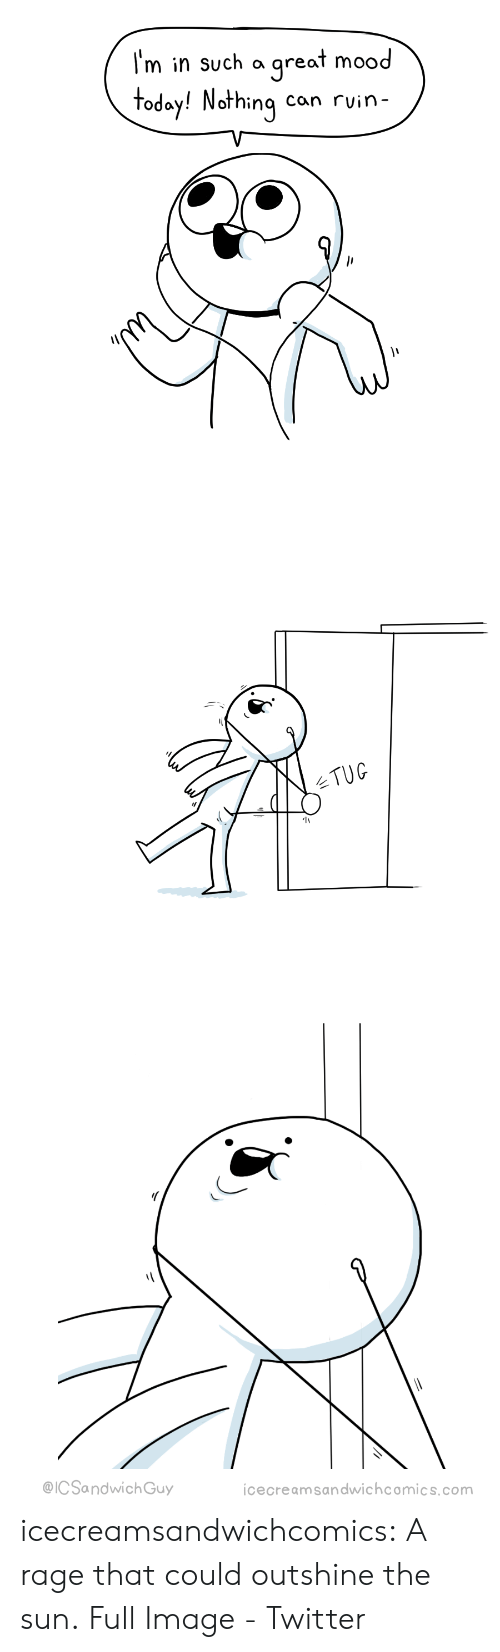 Mood, Target, and Tumblr: T'm in such a great mood  today! Nothing can rvin-   TUG   @ICSandwichGuy  icecreamsandwichcomics.com icecreamsandwichcomics:  A rage that could outshine the sun. Full Image - Twitter